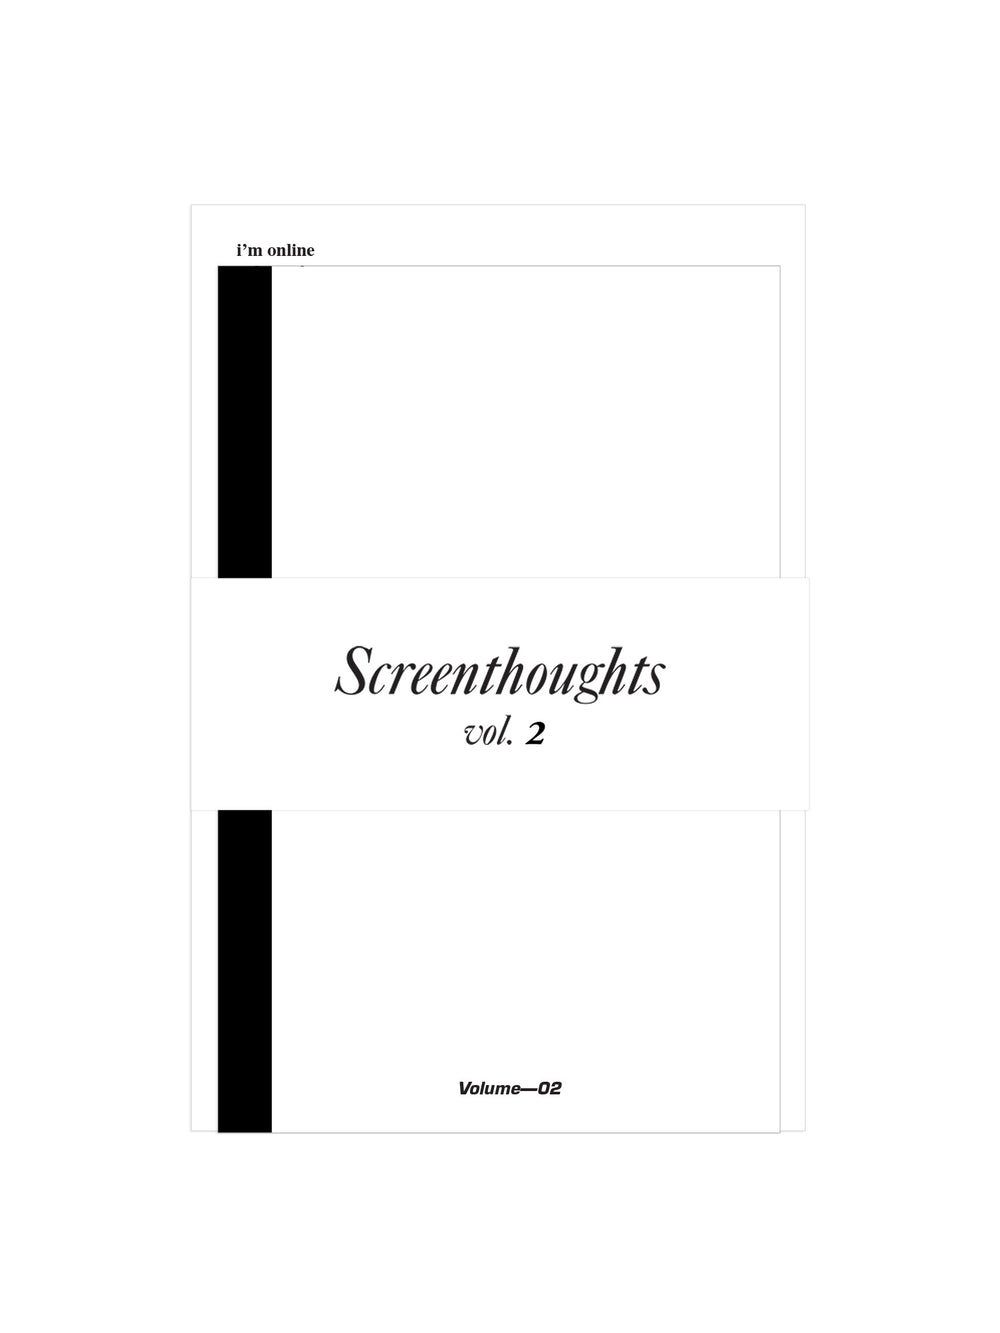 Screenthoughts, Volume 2